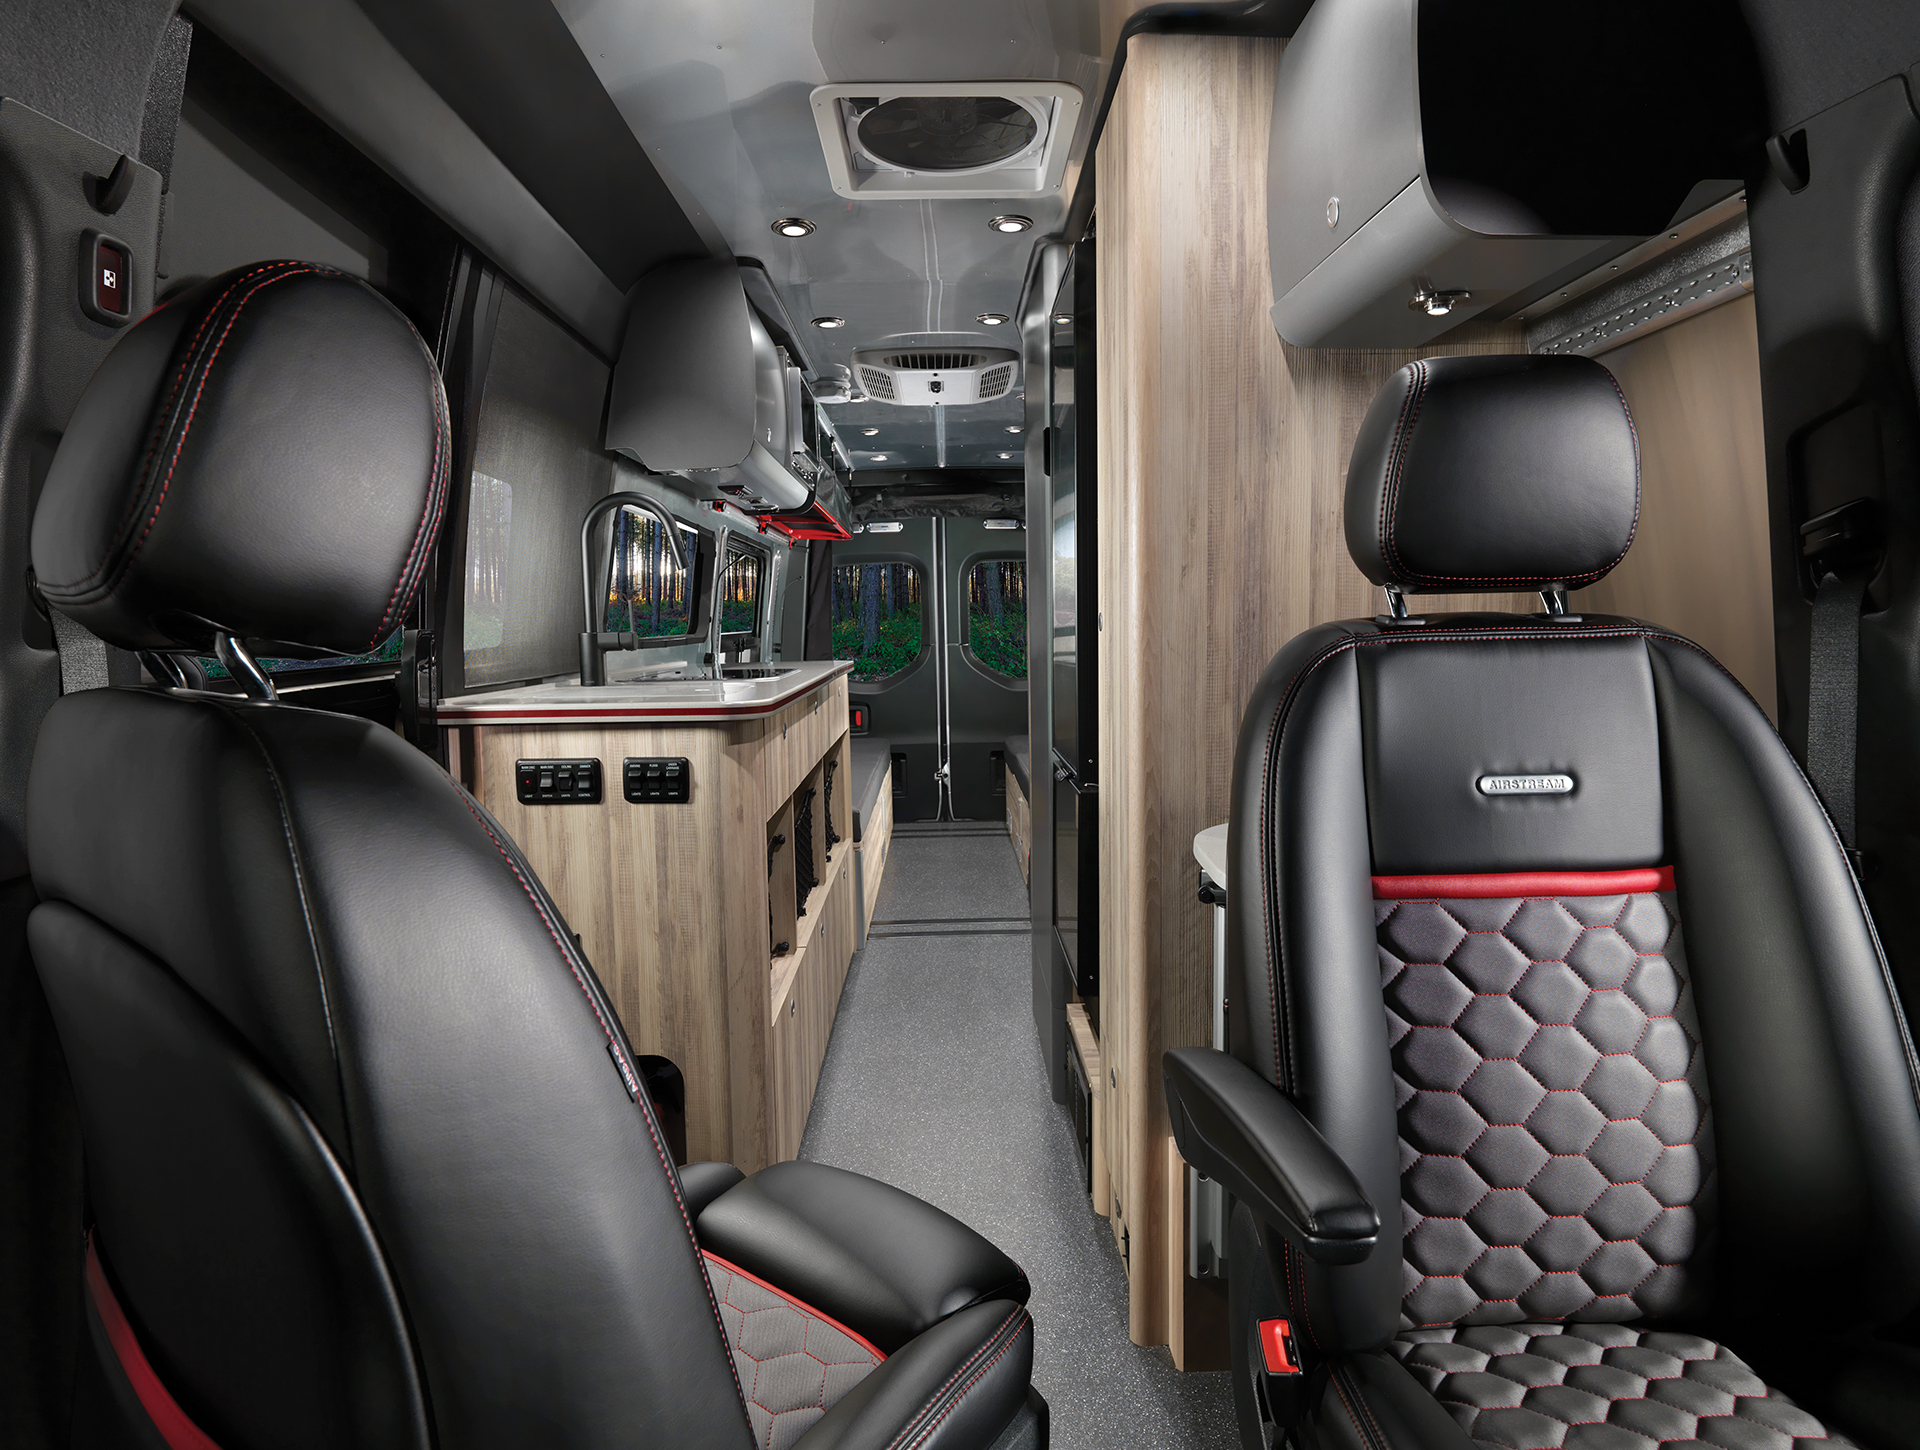 Airstream-Interstate-24X-Touring-Coach-Adventure-Van-Interior-Front-to-Back